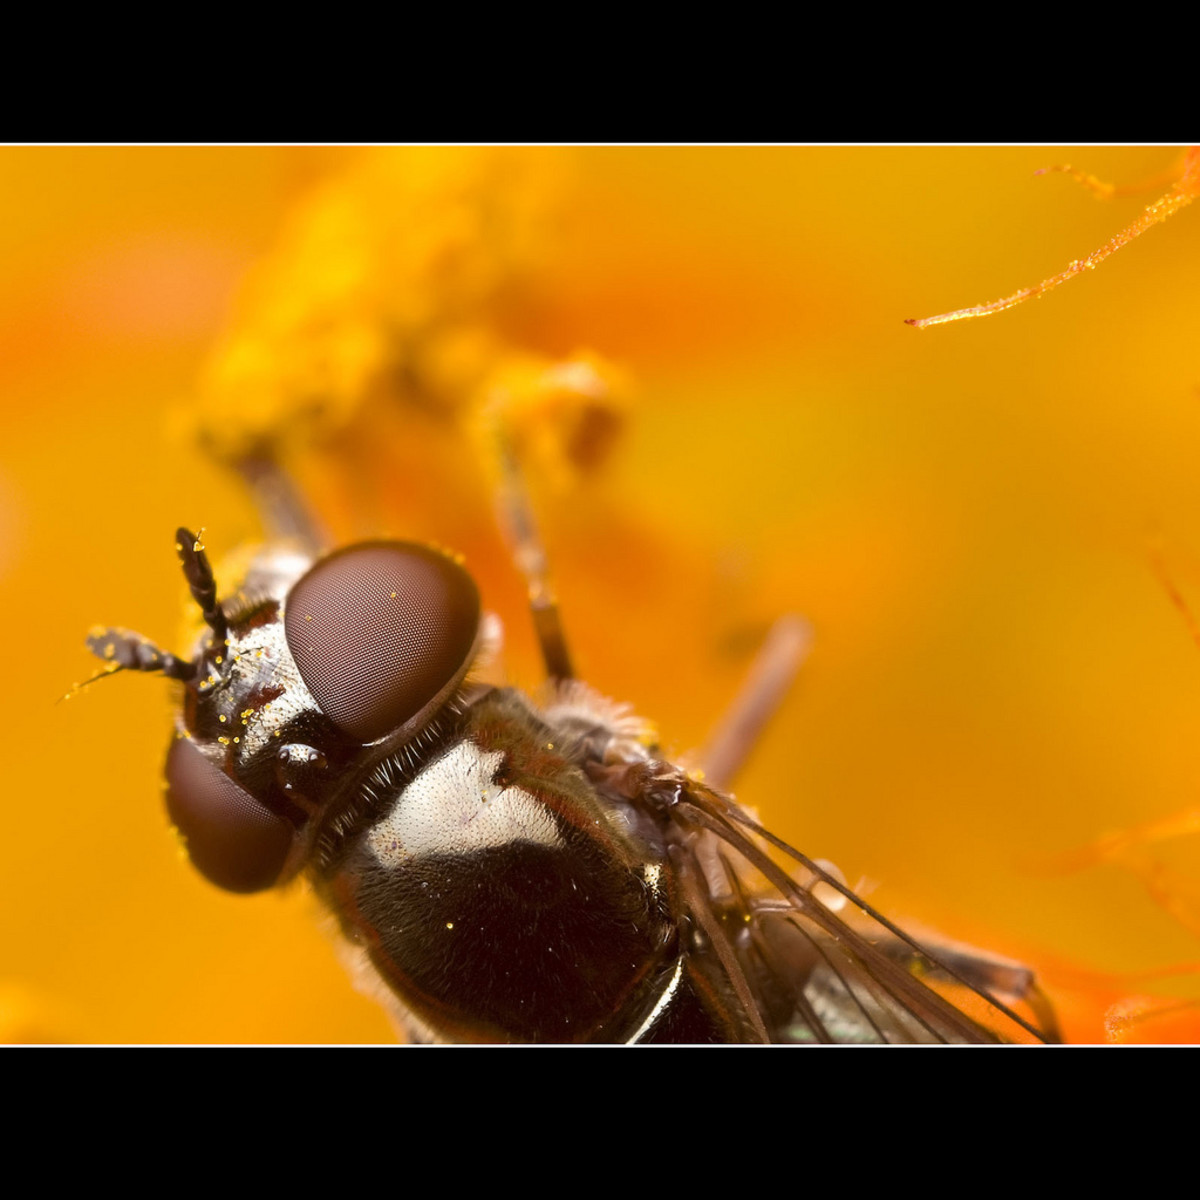 Hoverfly: The antenna of this fly is very unique.